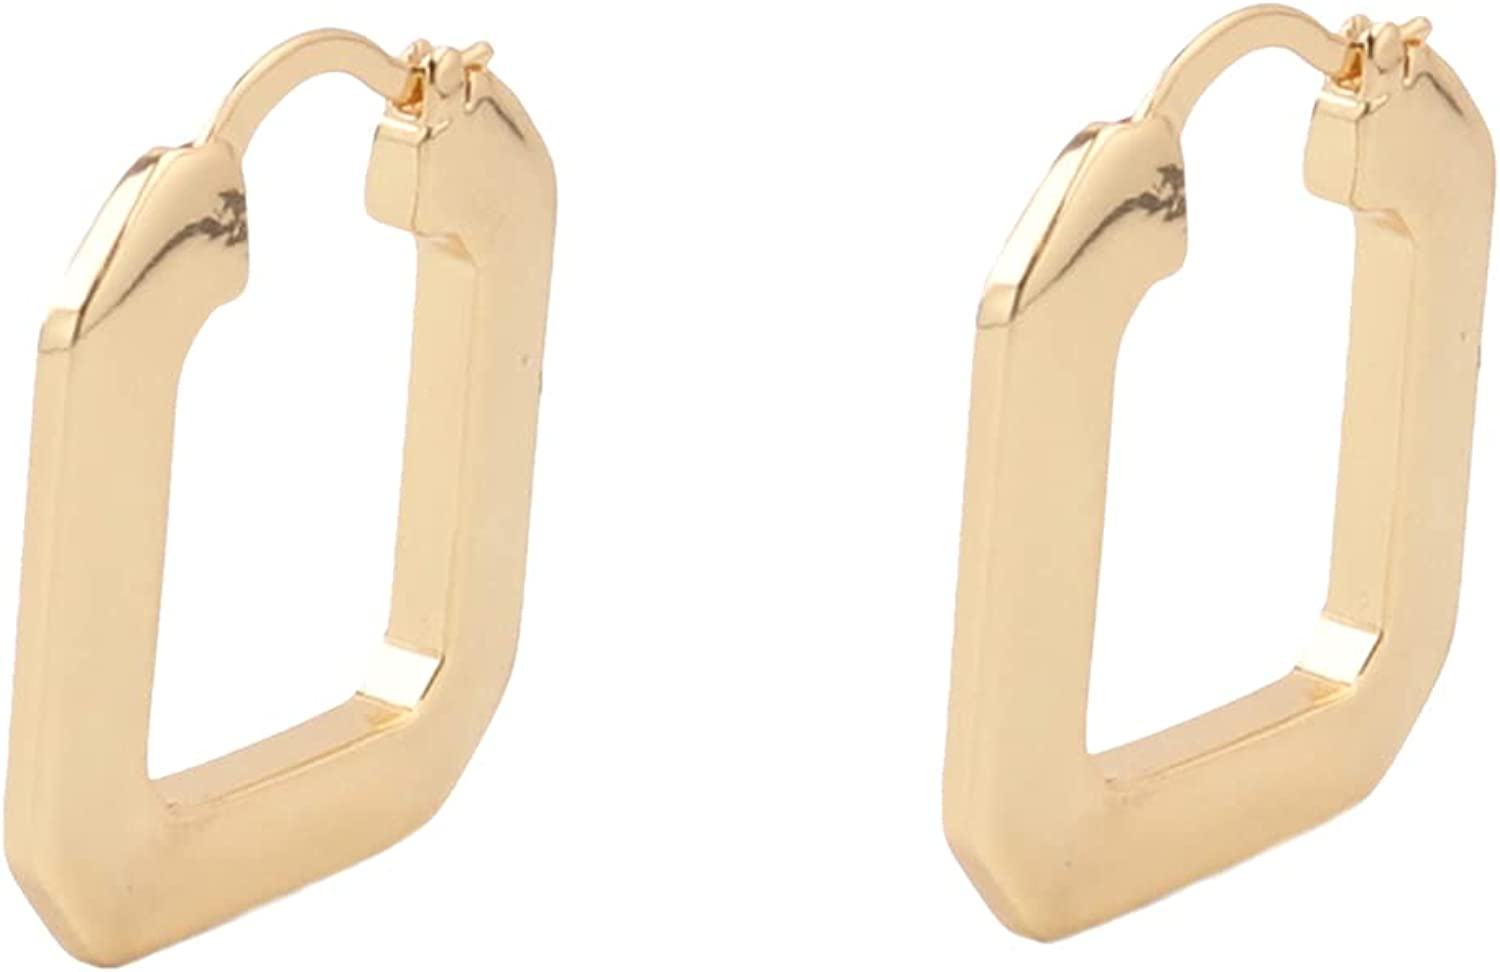 Custom 1 Pair Brass 18K Gold Filled Dainty Flat Square U-shape Hoops Earrings Simple Daily Style Brands Boutique Factory Wholesale